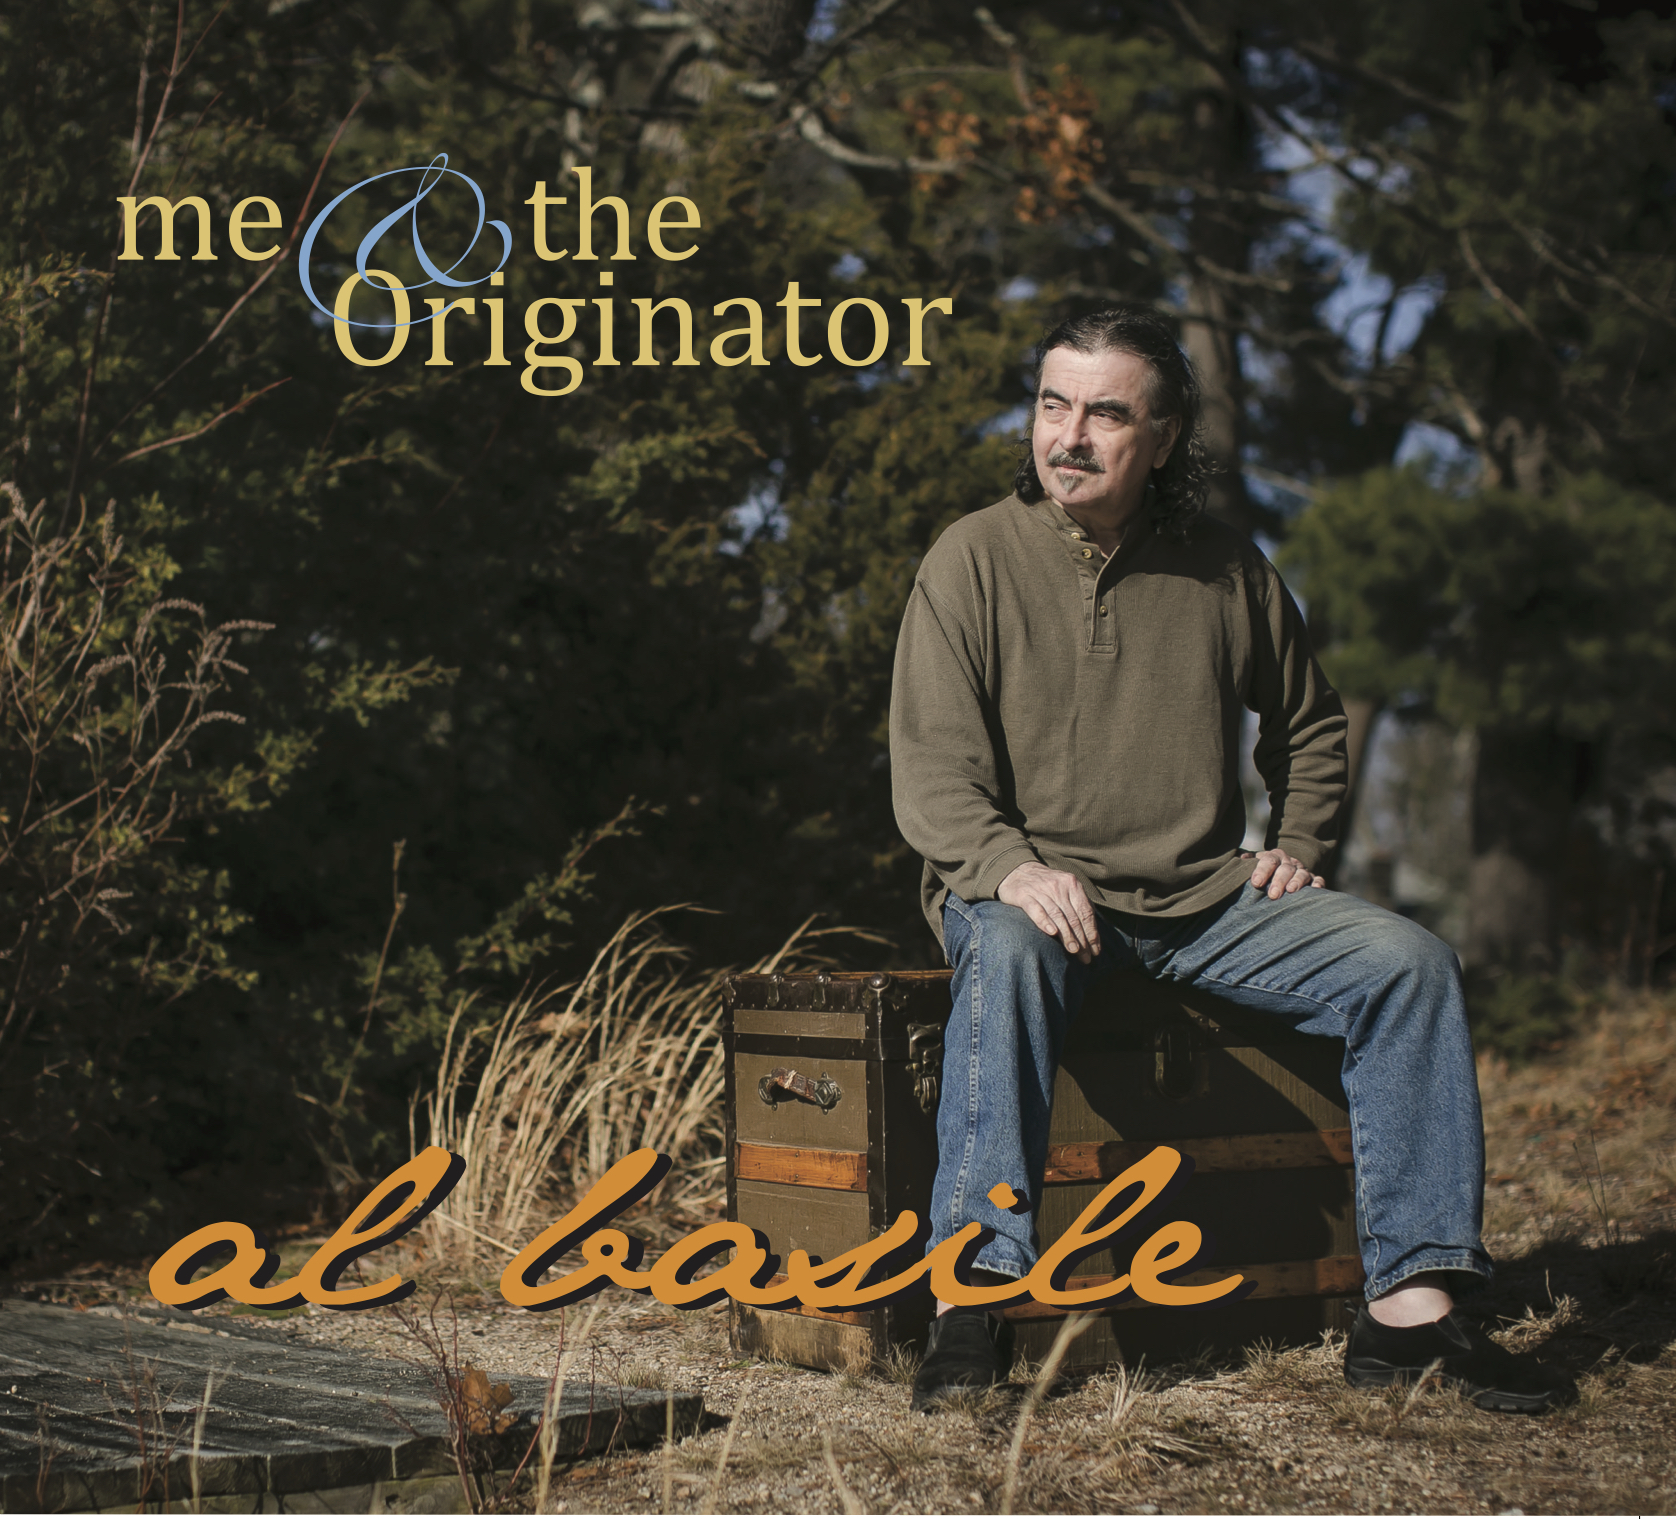 Al Basile Brings His Songs and Stories to Life on New CD